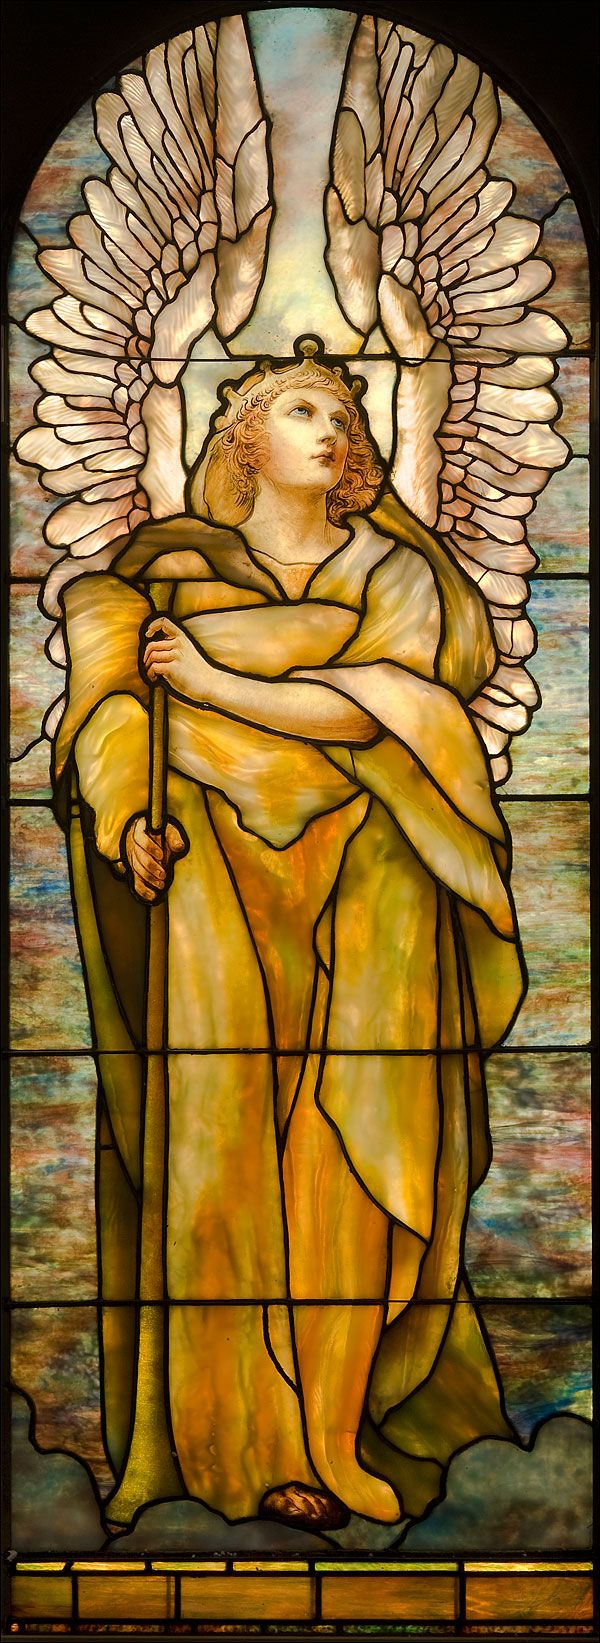 'Angel of the Resurrection' by Louis C. Tiffany (1848-1933) - Collection of the Montreal Museum of Fine Arts.Tiffany 1848 1933, Montreal Museums, Tiffany Glasses, Fine Art, Glasses Windows, Tiffany 18481933, Angels Wings, Guardian Angels, Stained Glasses